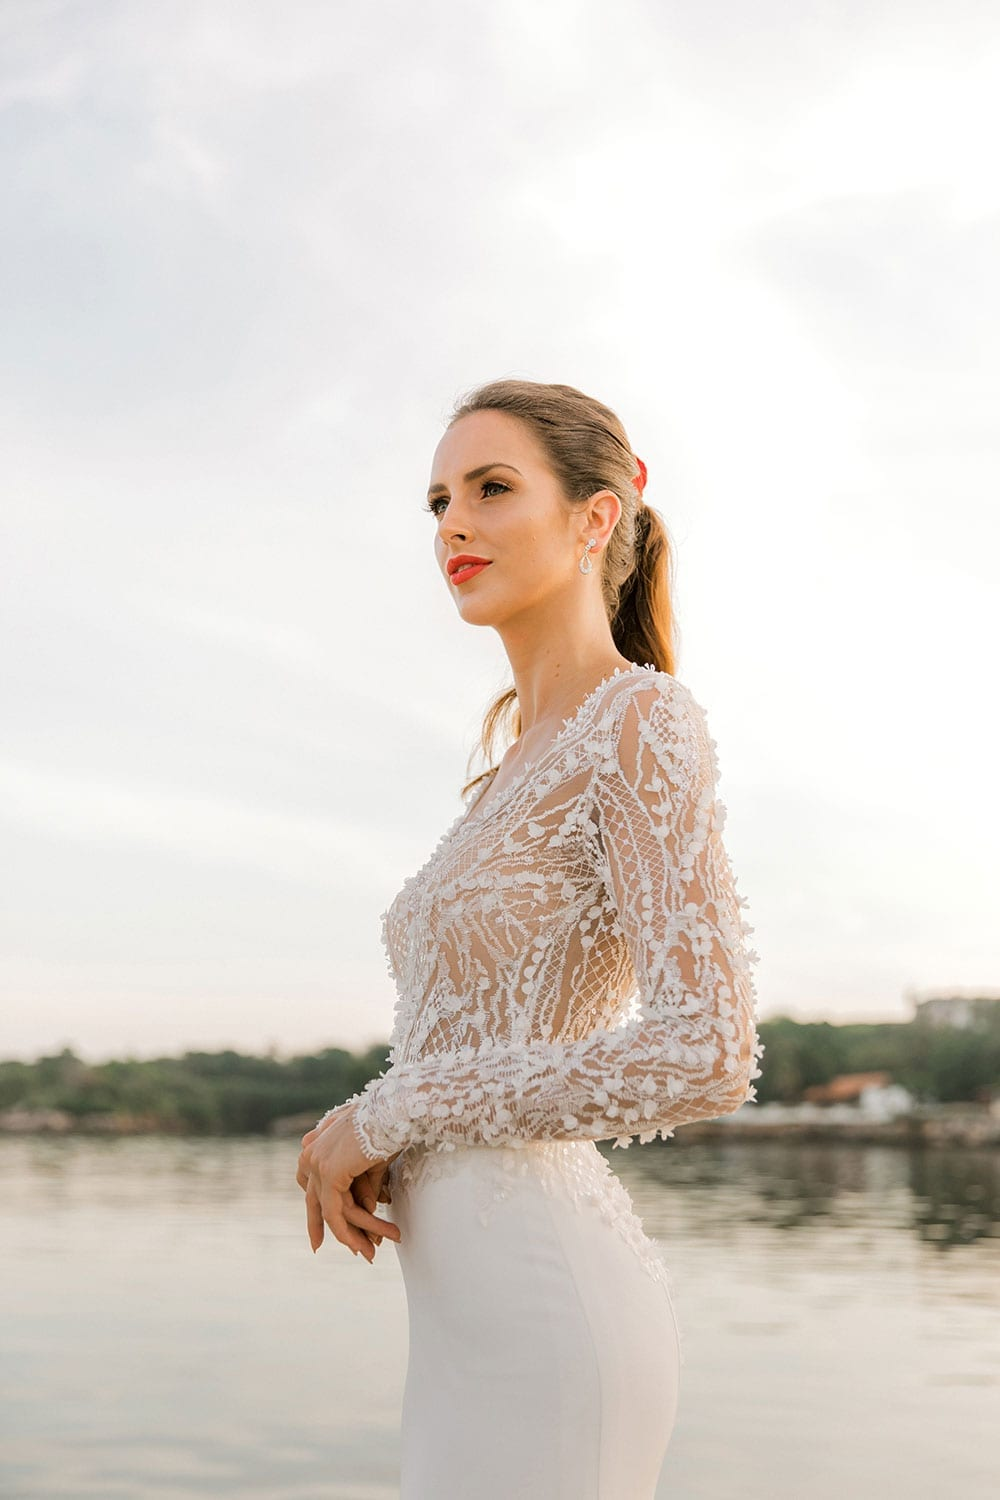 Model wearing Vinka Design Angela Wedding Dress, Fitted Wedding Gown with Lace Bodice cloe up showing detail of lace bodice in Havana